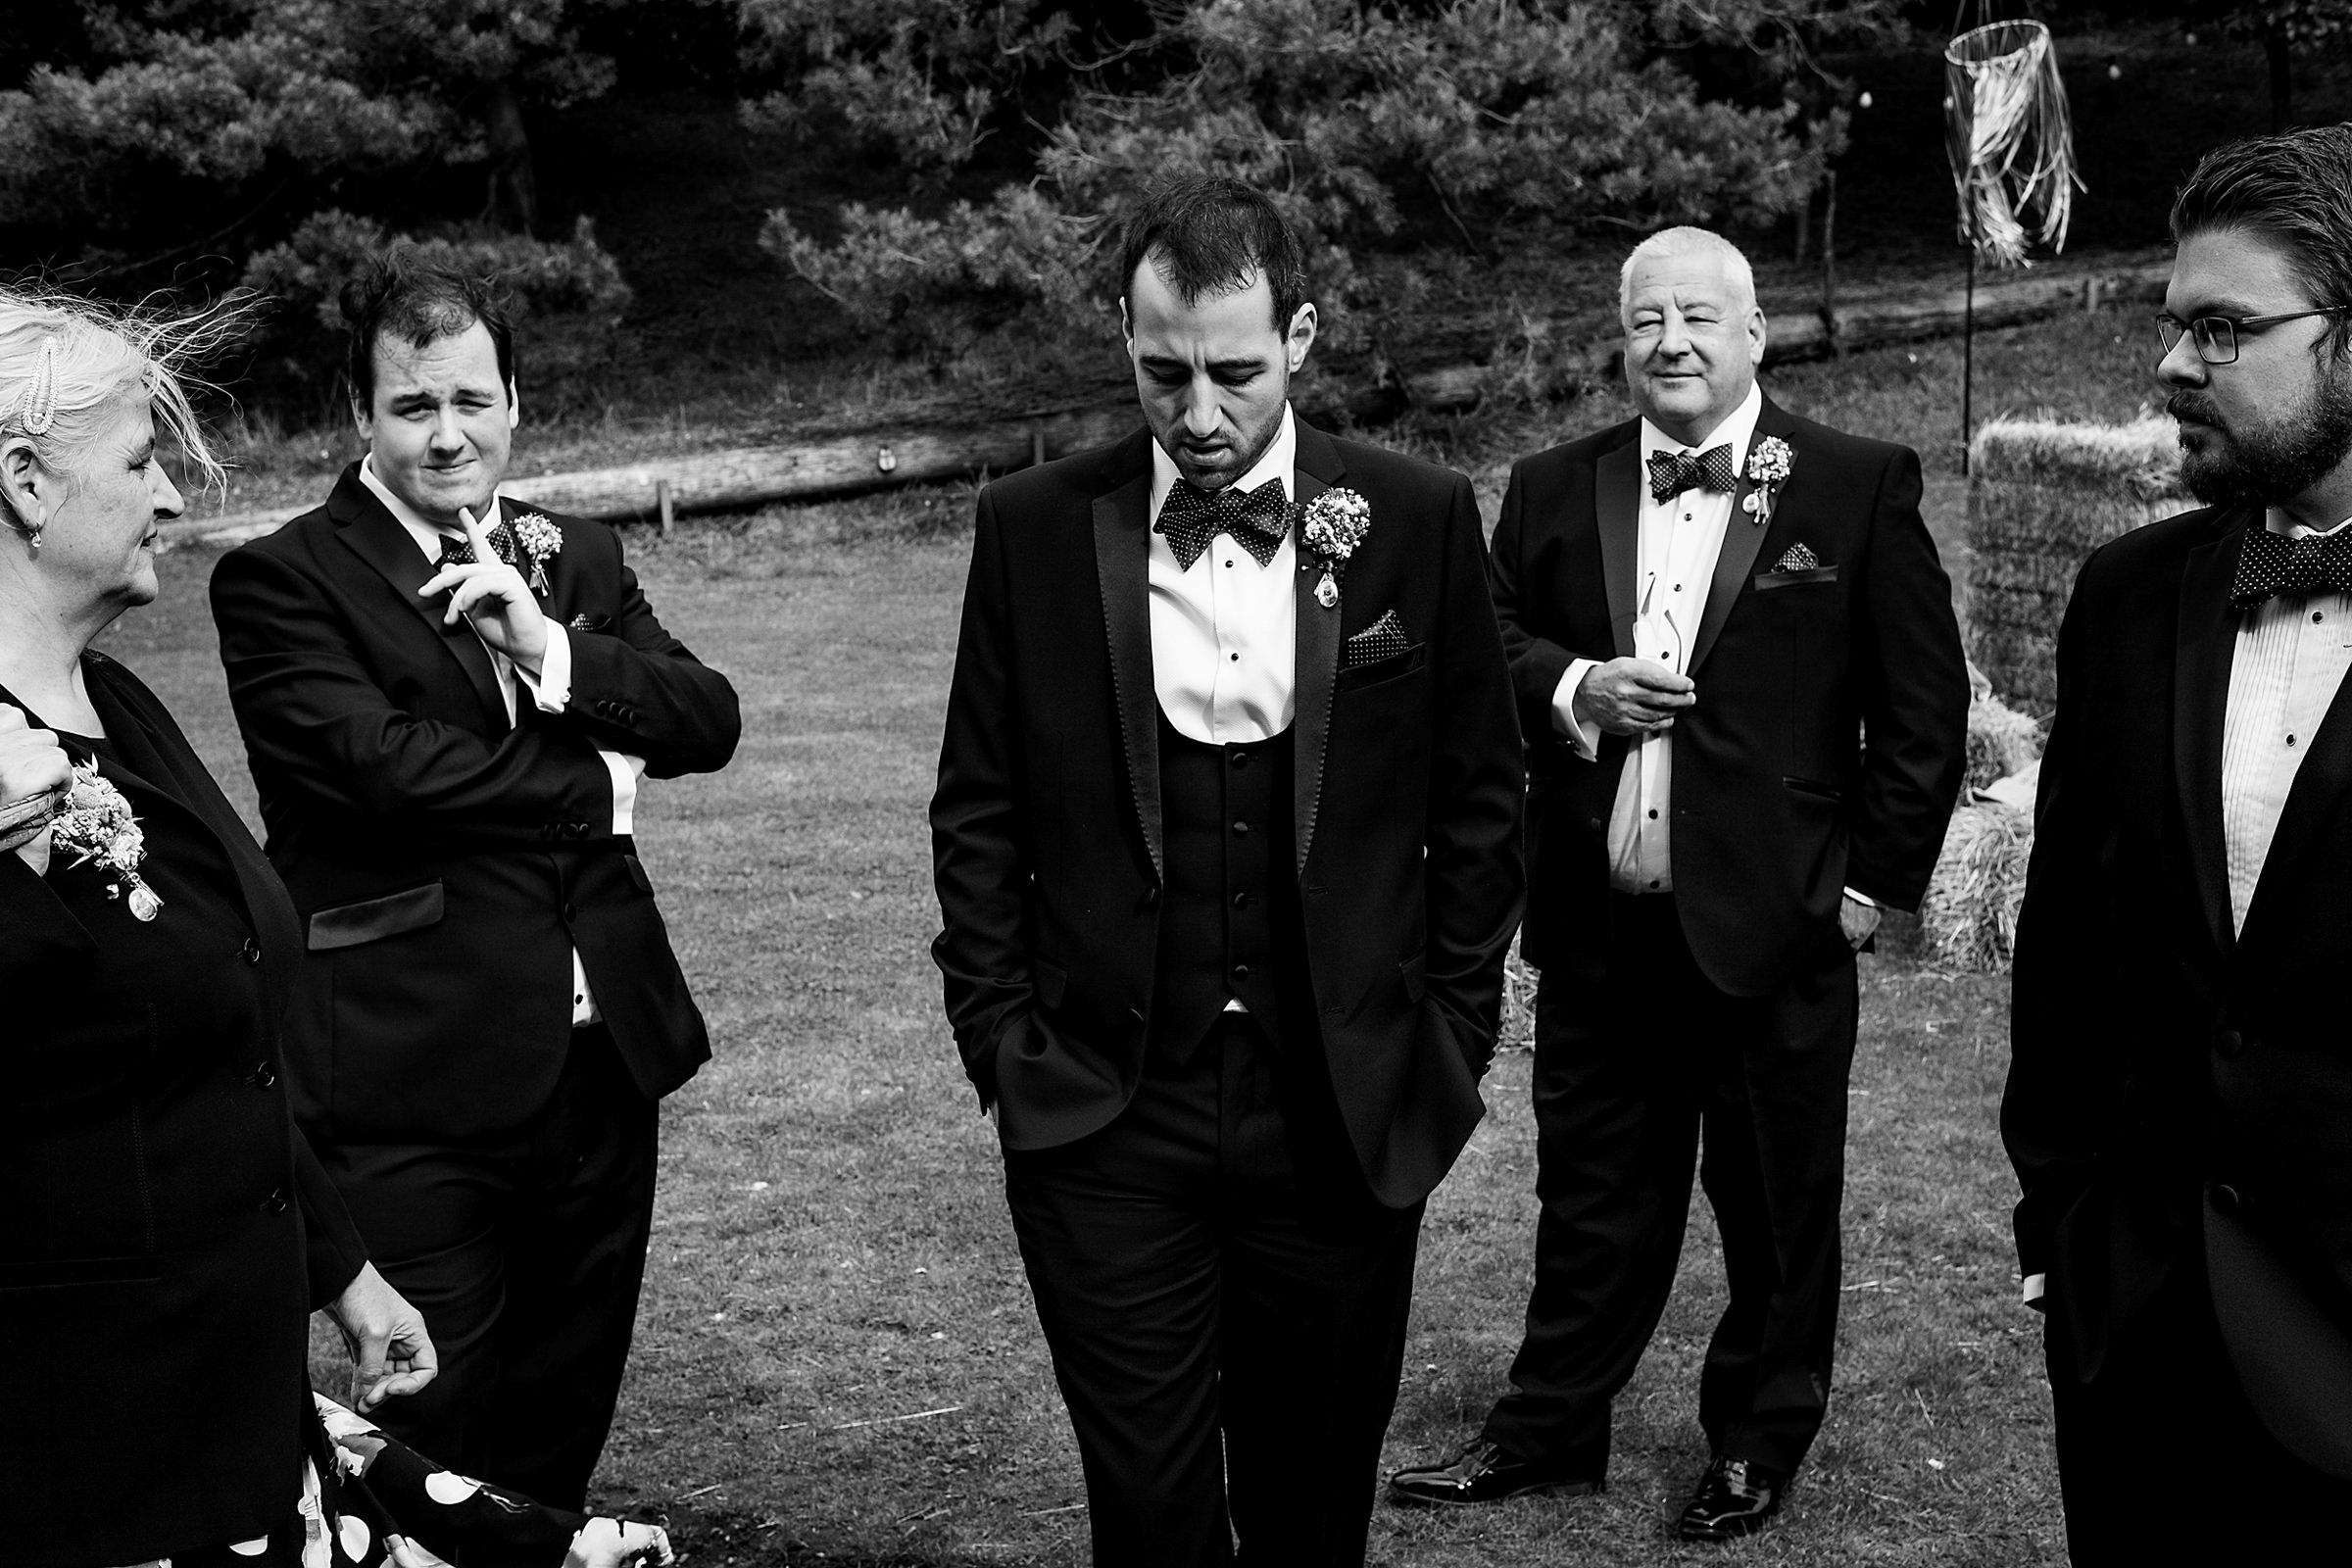 Groom moment with wedding party - photo by Emma + Rich